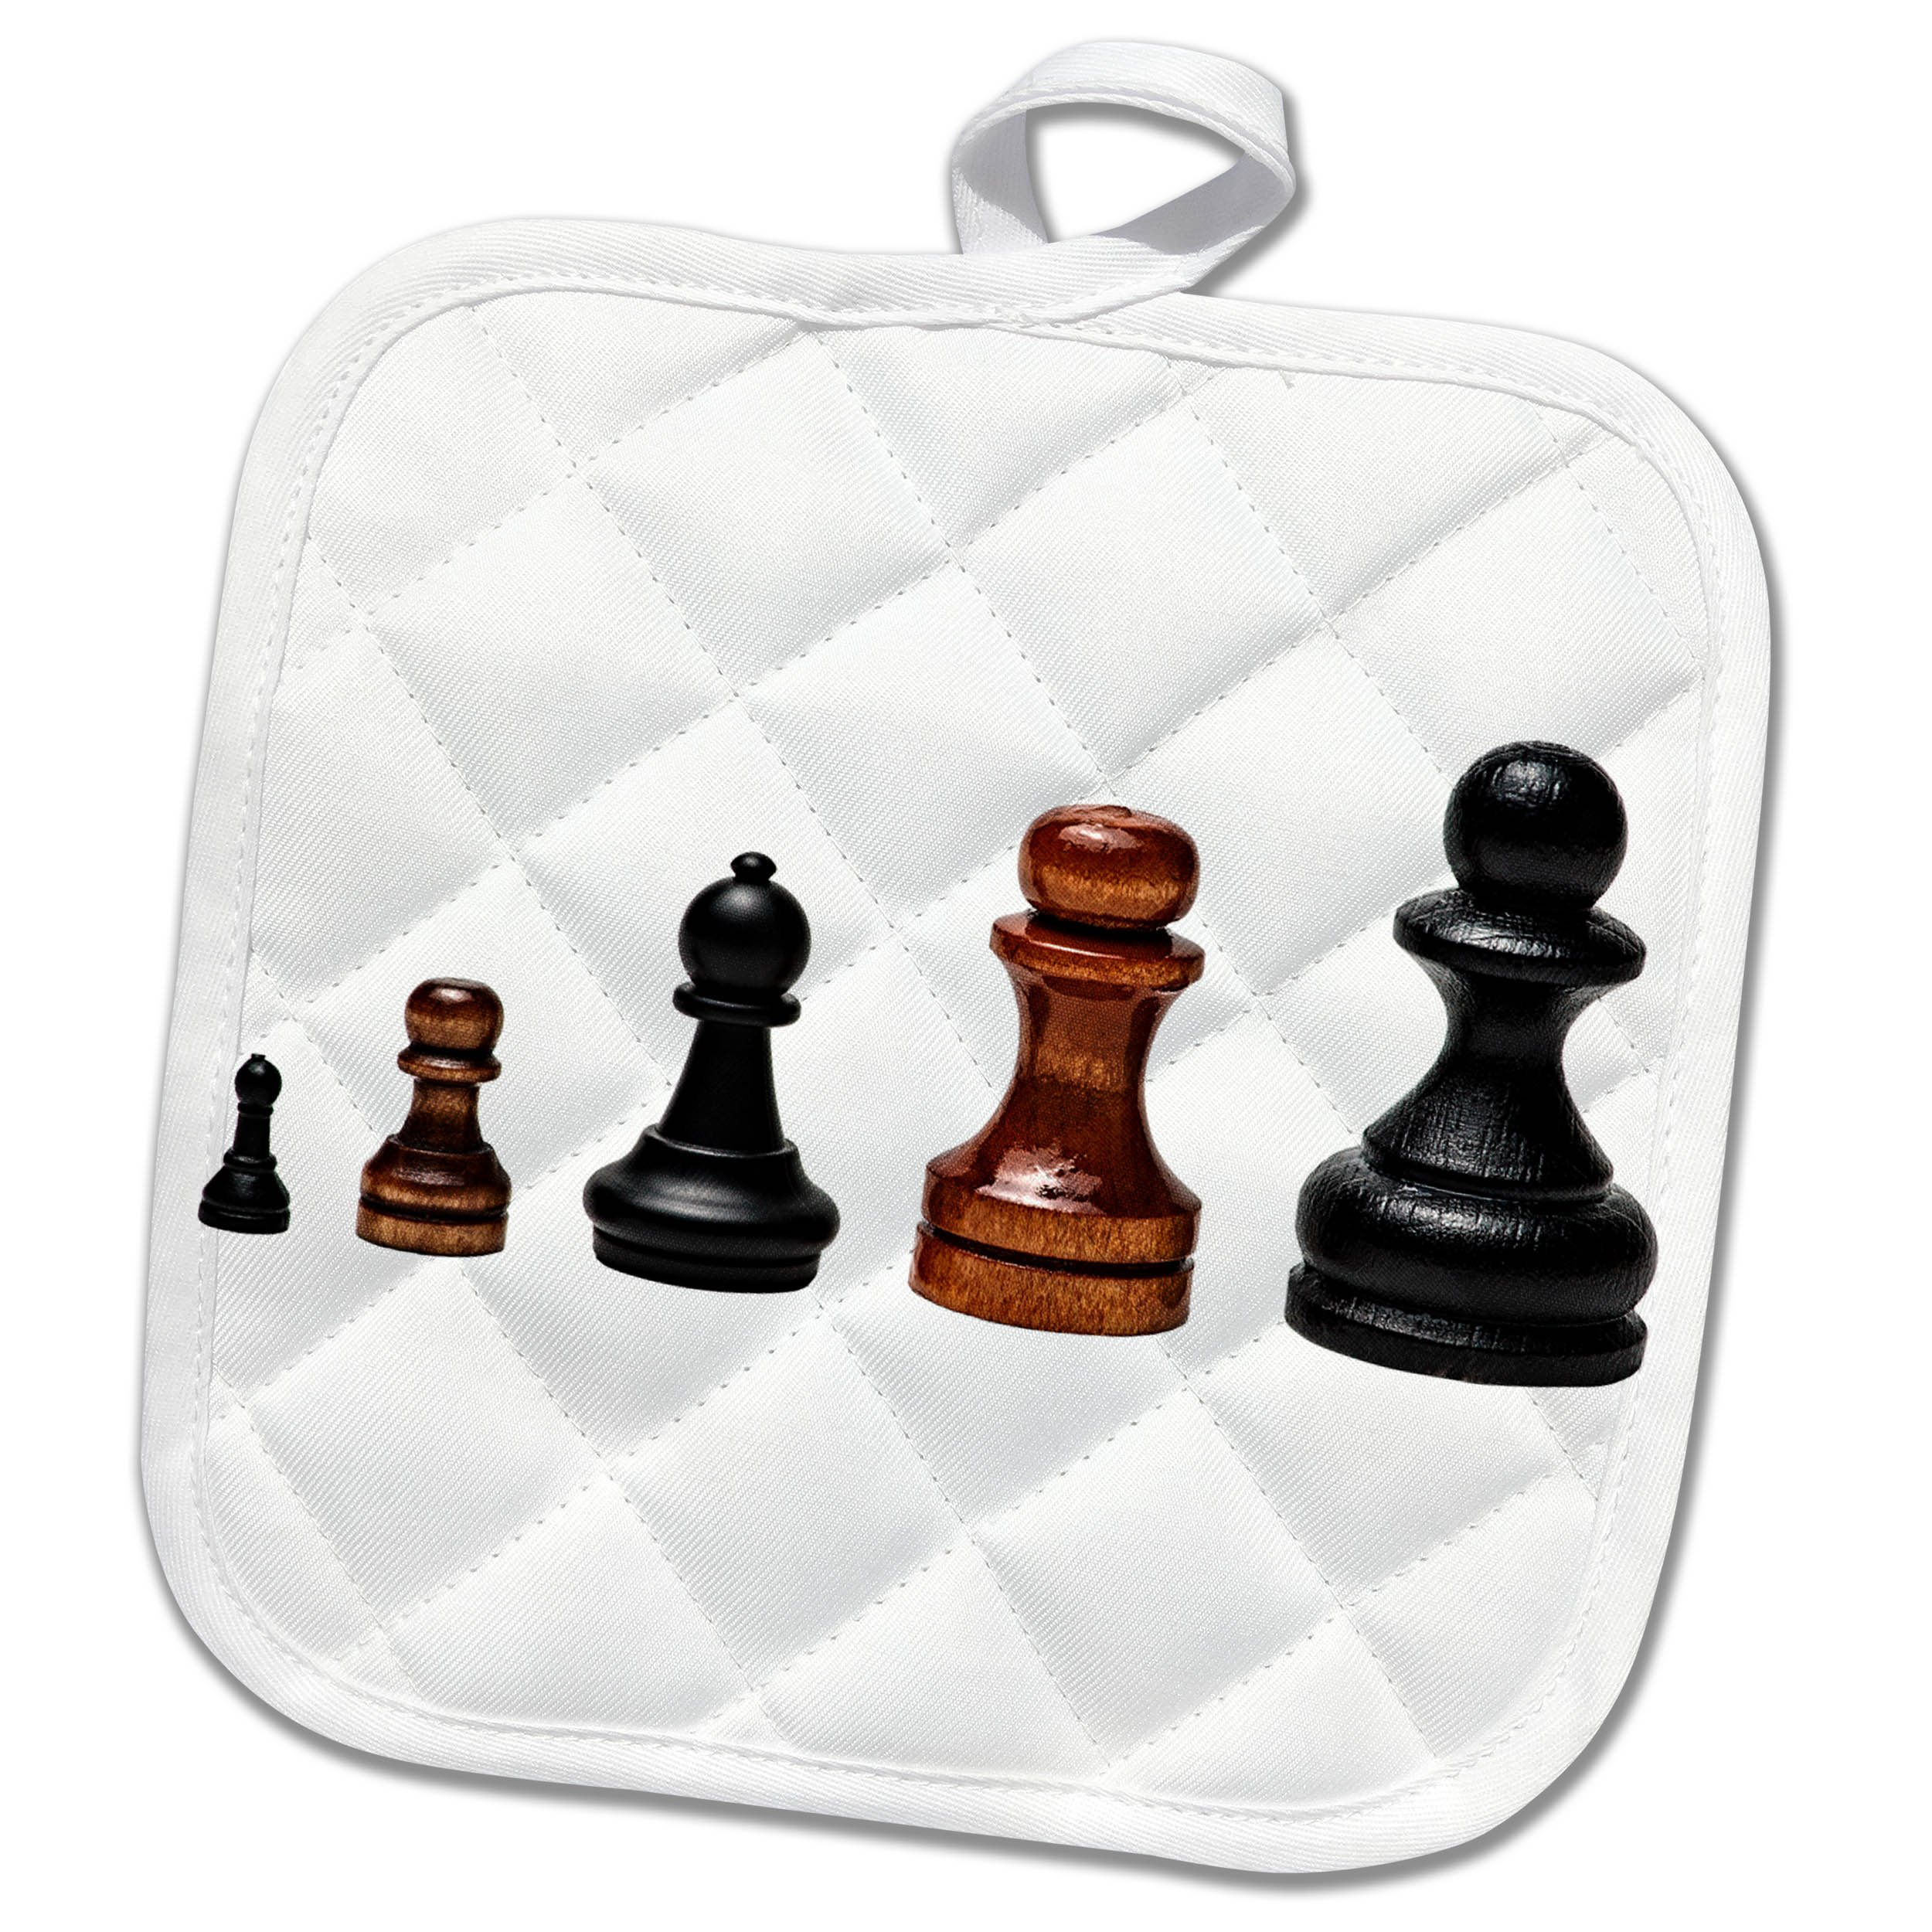 3dRose Alexis Design - Objects - Five chess pawns in a row from small to large. Business career path - 8x8 Potholder (phl_264263_1)